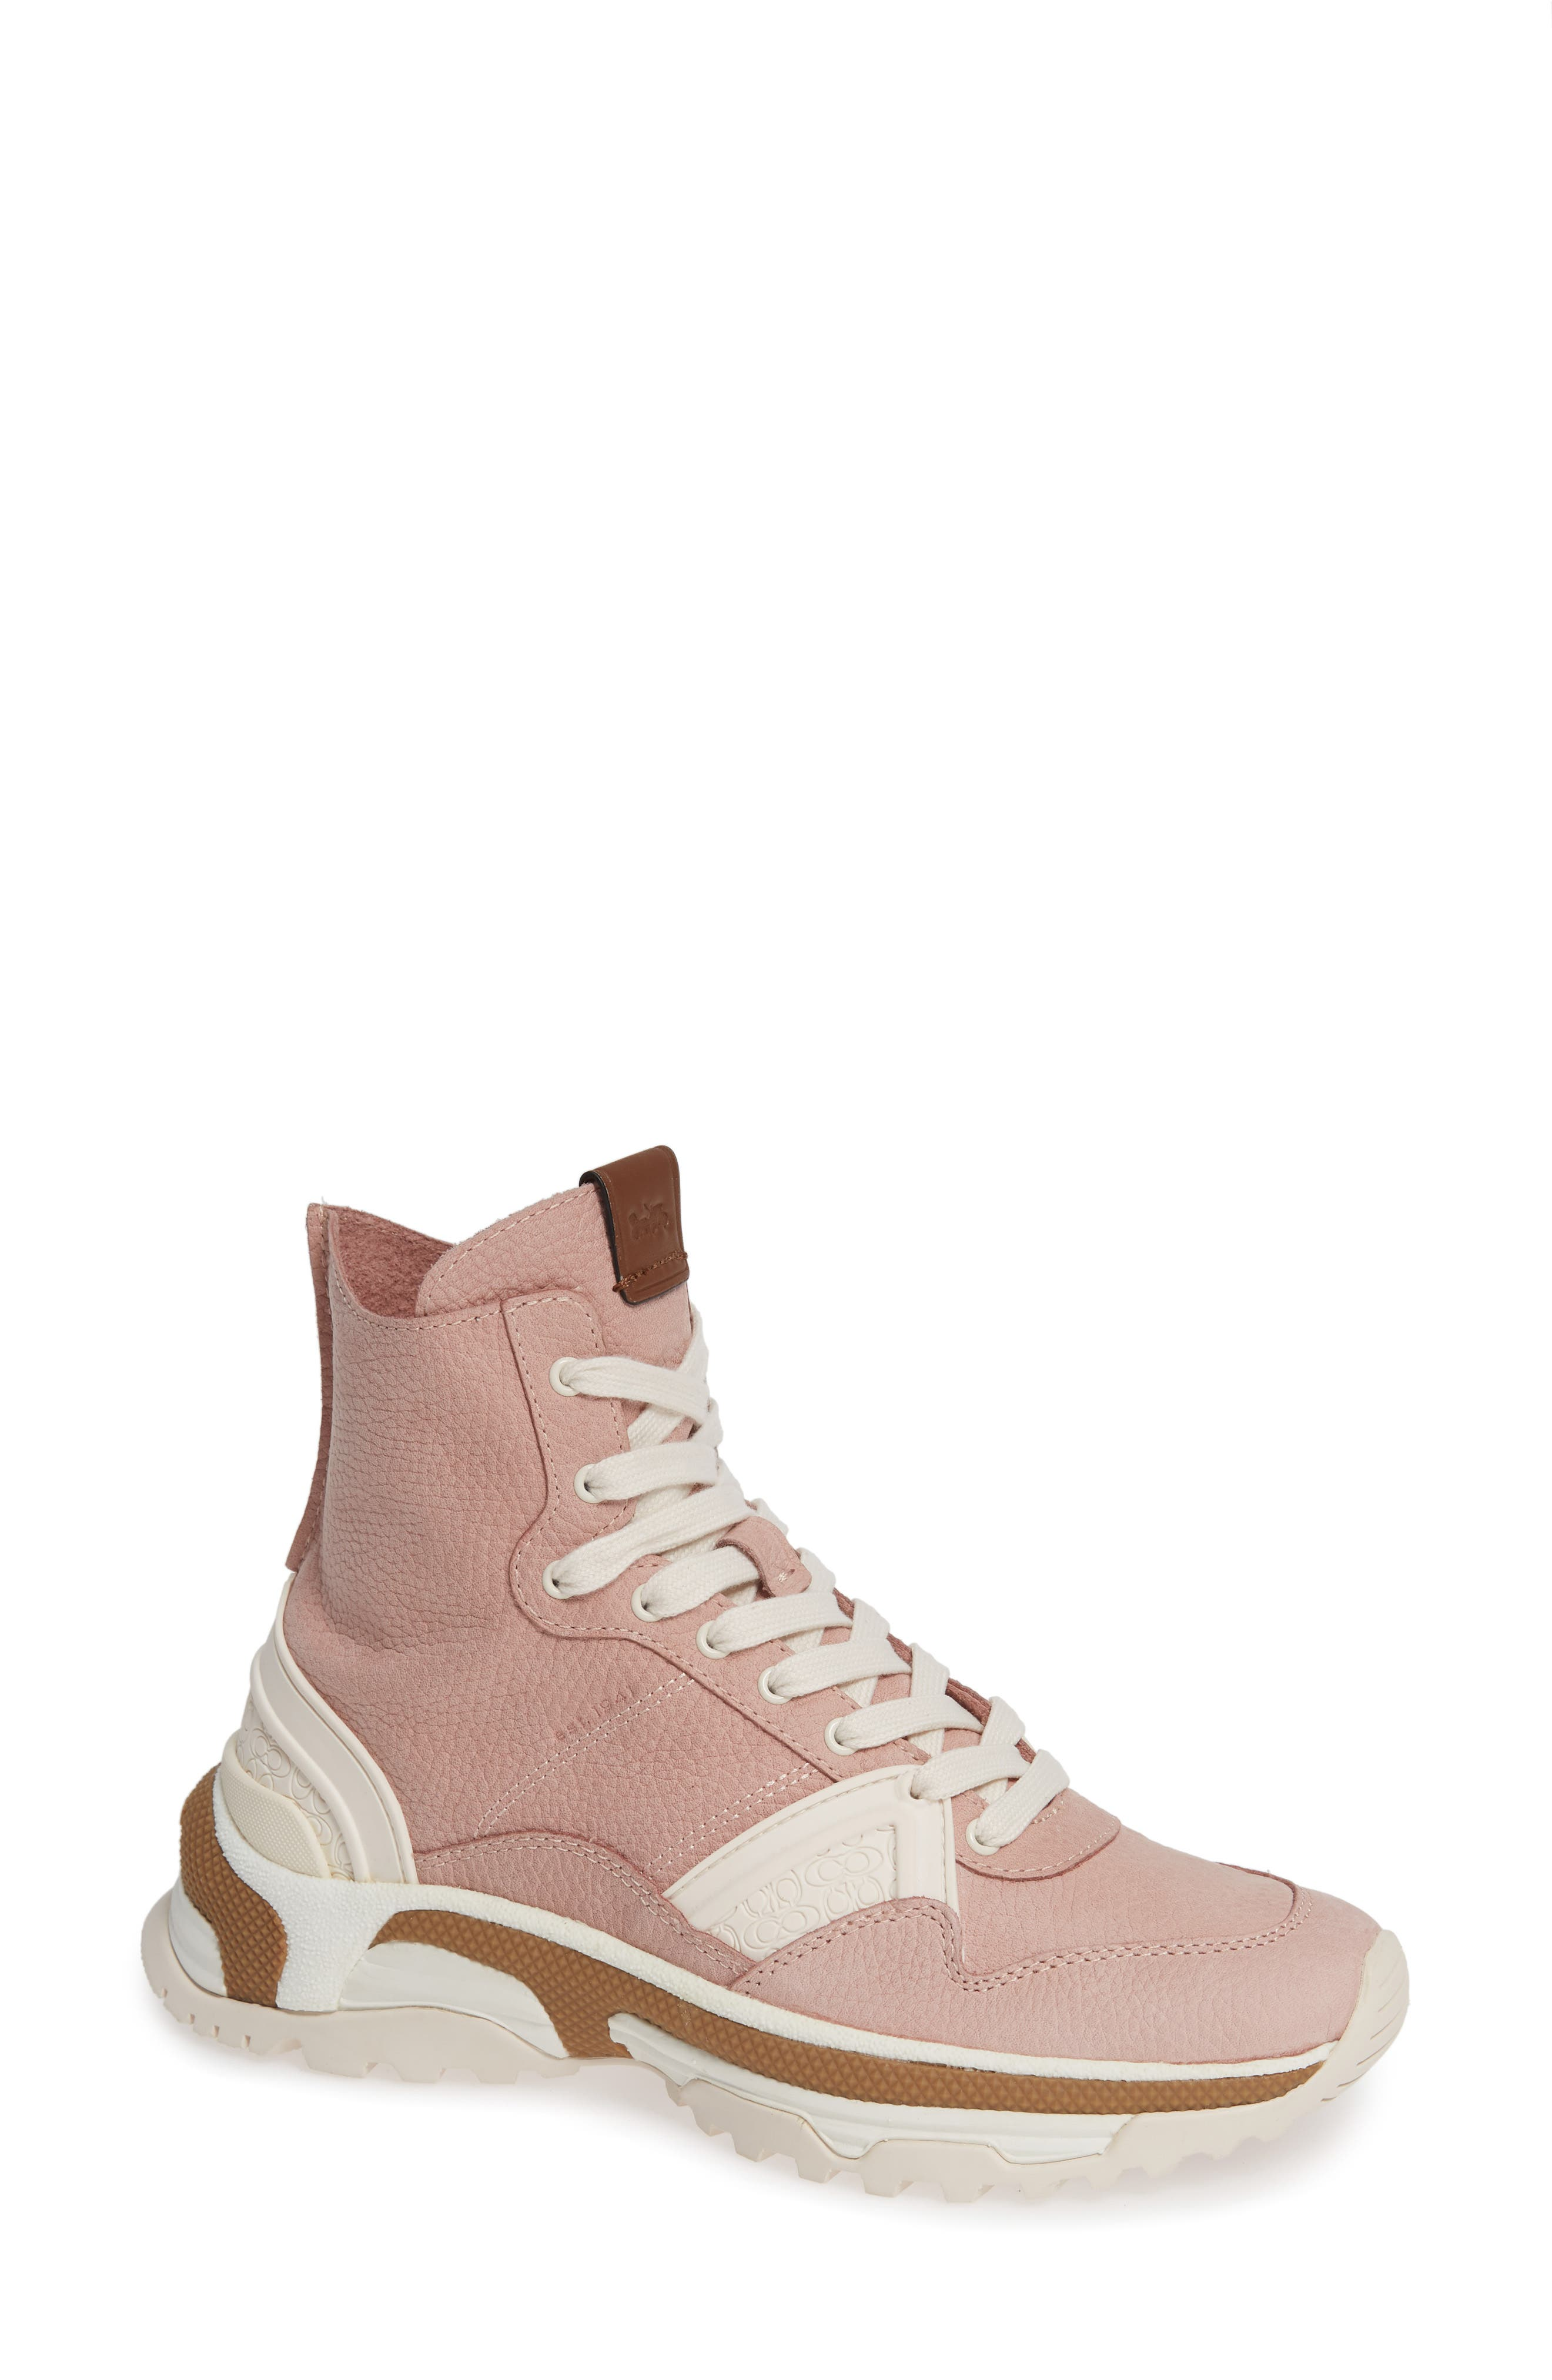 COACH High Top Sneaker, Main, color, BLUSH PINK NUBUCK LEATHER